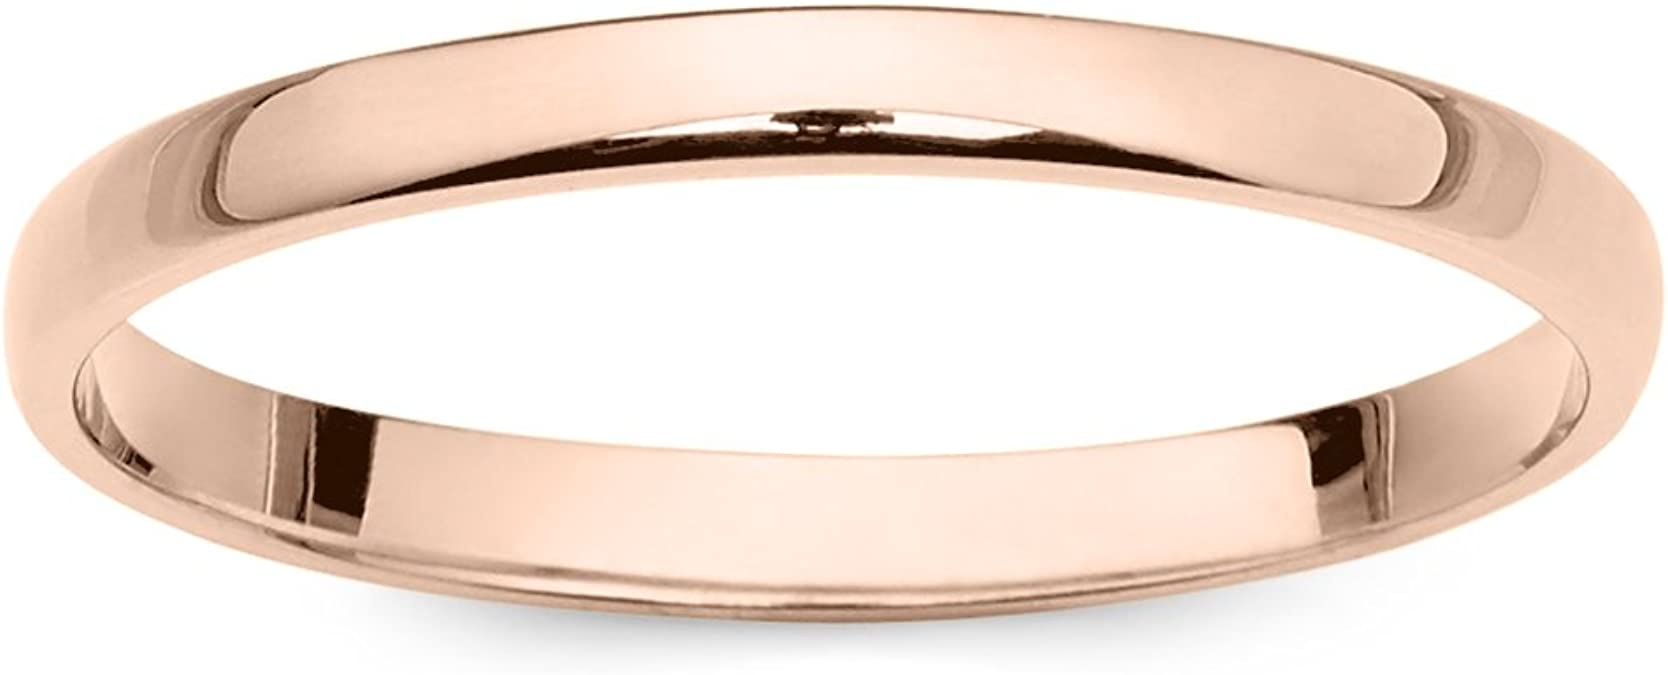 Details about  /Women/'S 10K Rose White Or Yellow Gold 6Mm Classic Plain Simple Wedding Band By